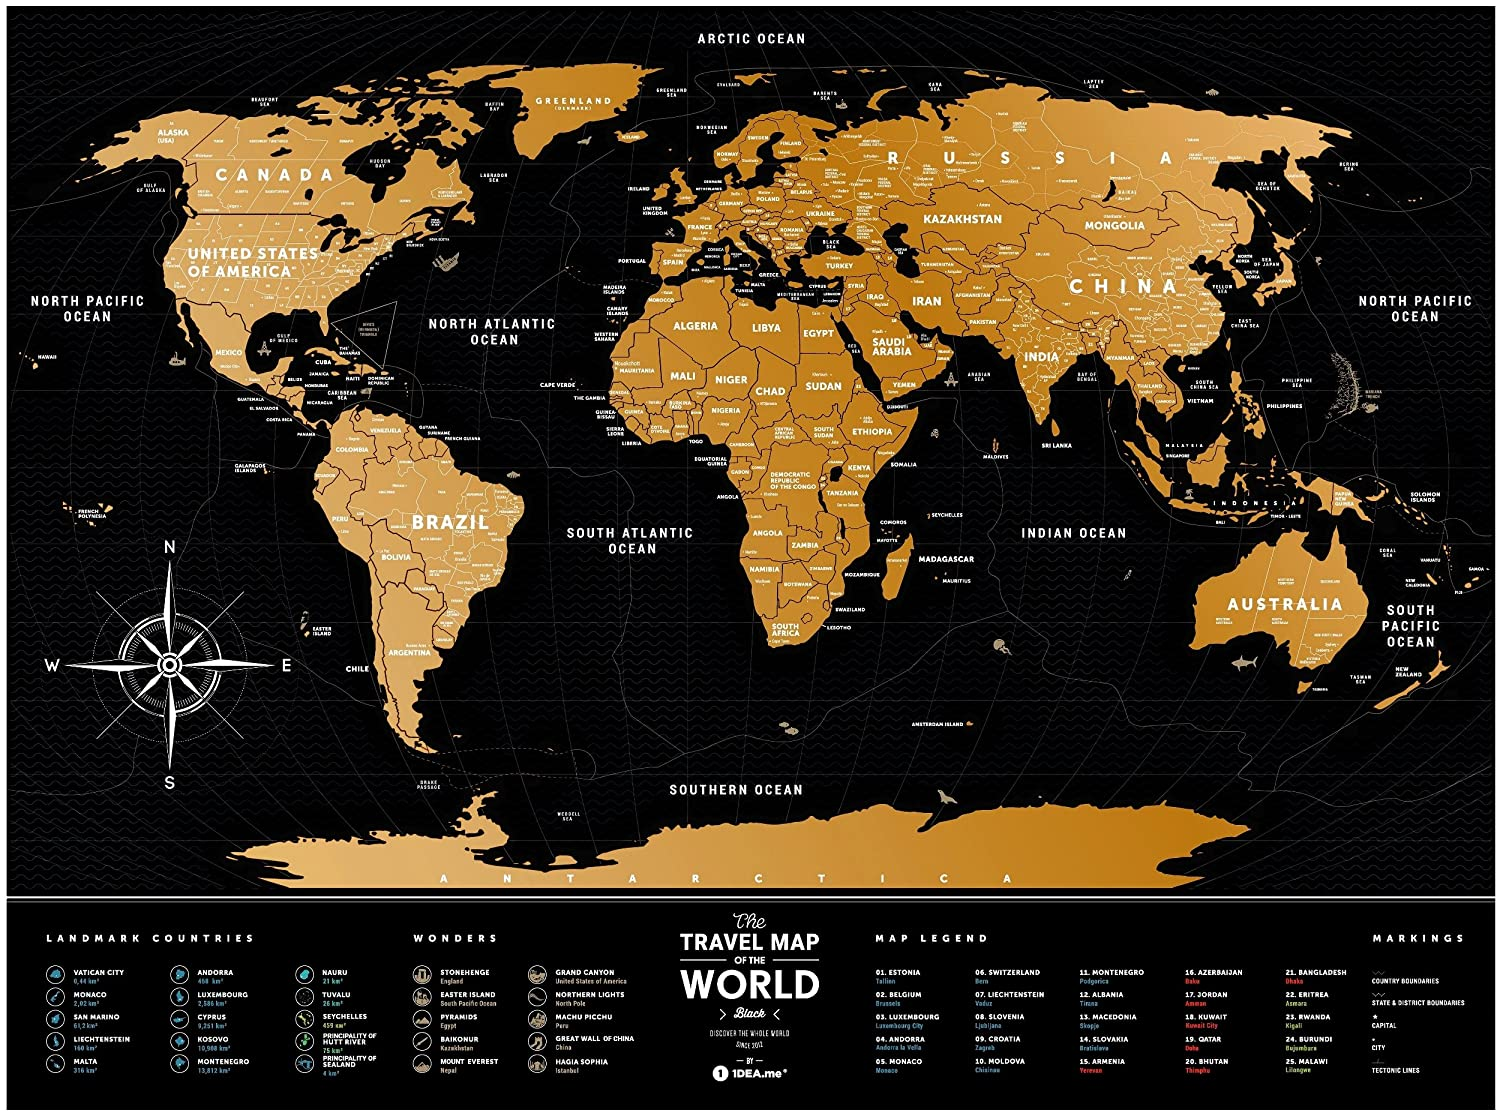 Amazon Com Scratch Off World Travel Map 1dea Me Black Scratchable Poster Of The World Usa Interactive Modern Geography Maps Travel Tracker Wall Art